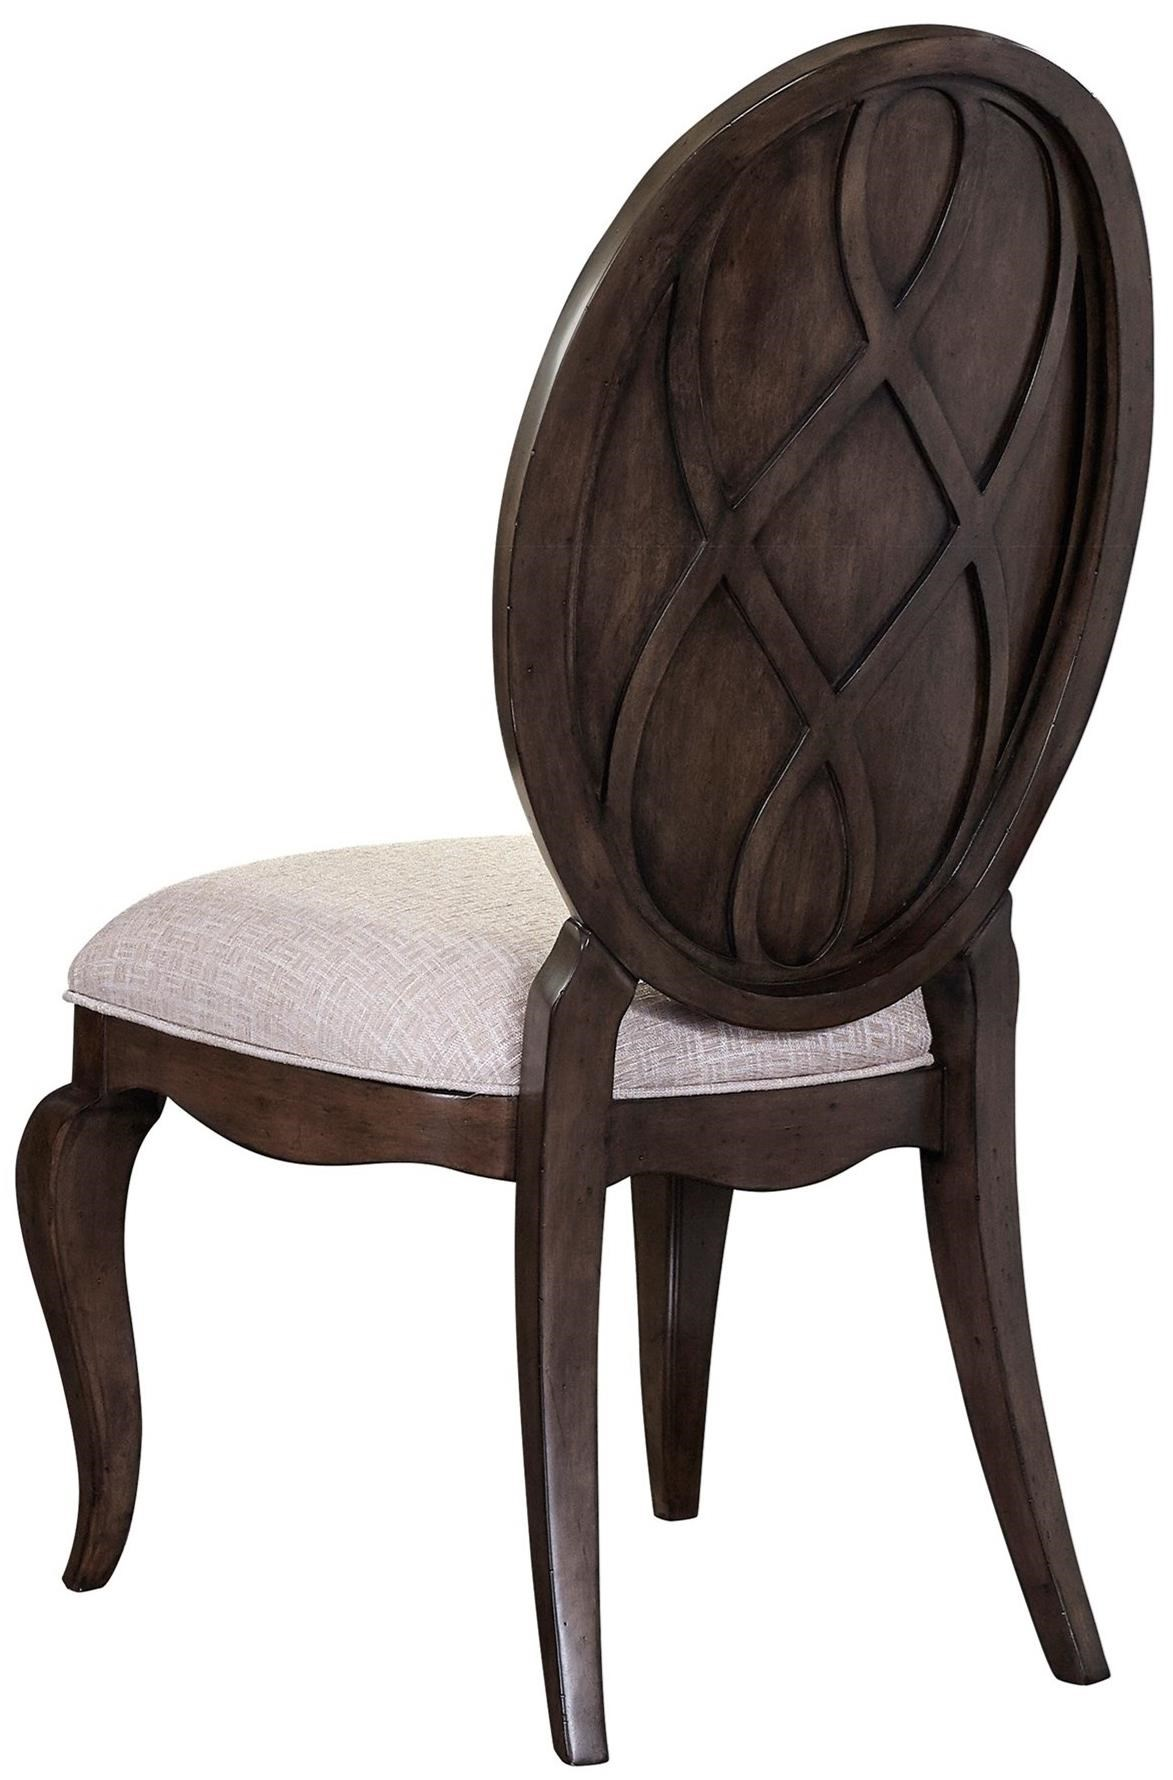 Broyhill Furniture Cashmera Dining Side Chair - Item Number: 4860-581